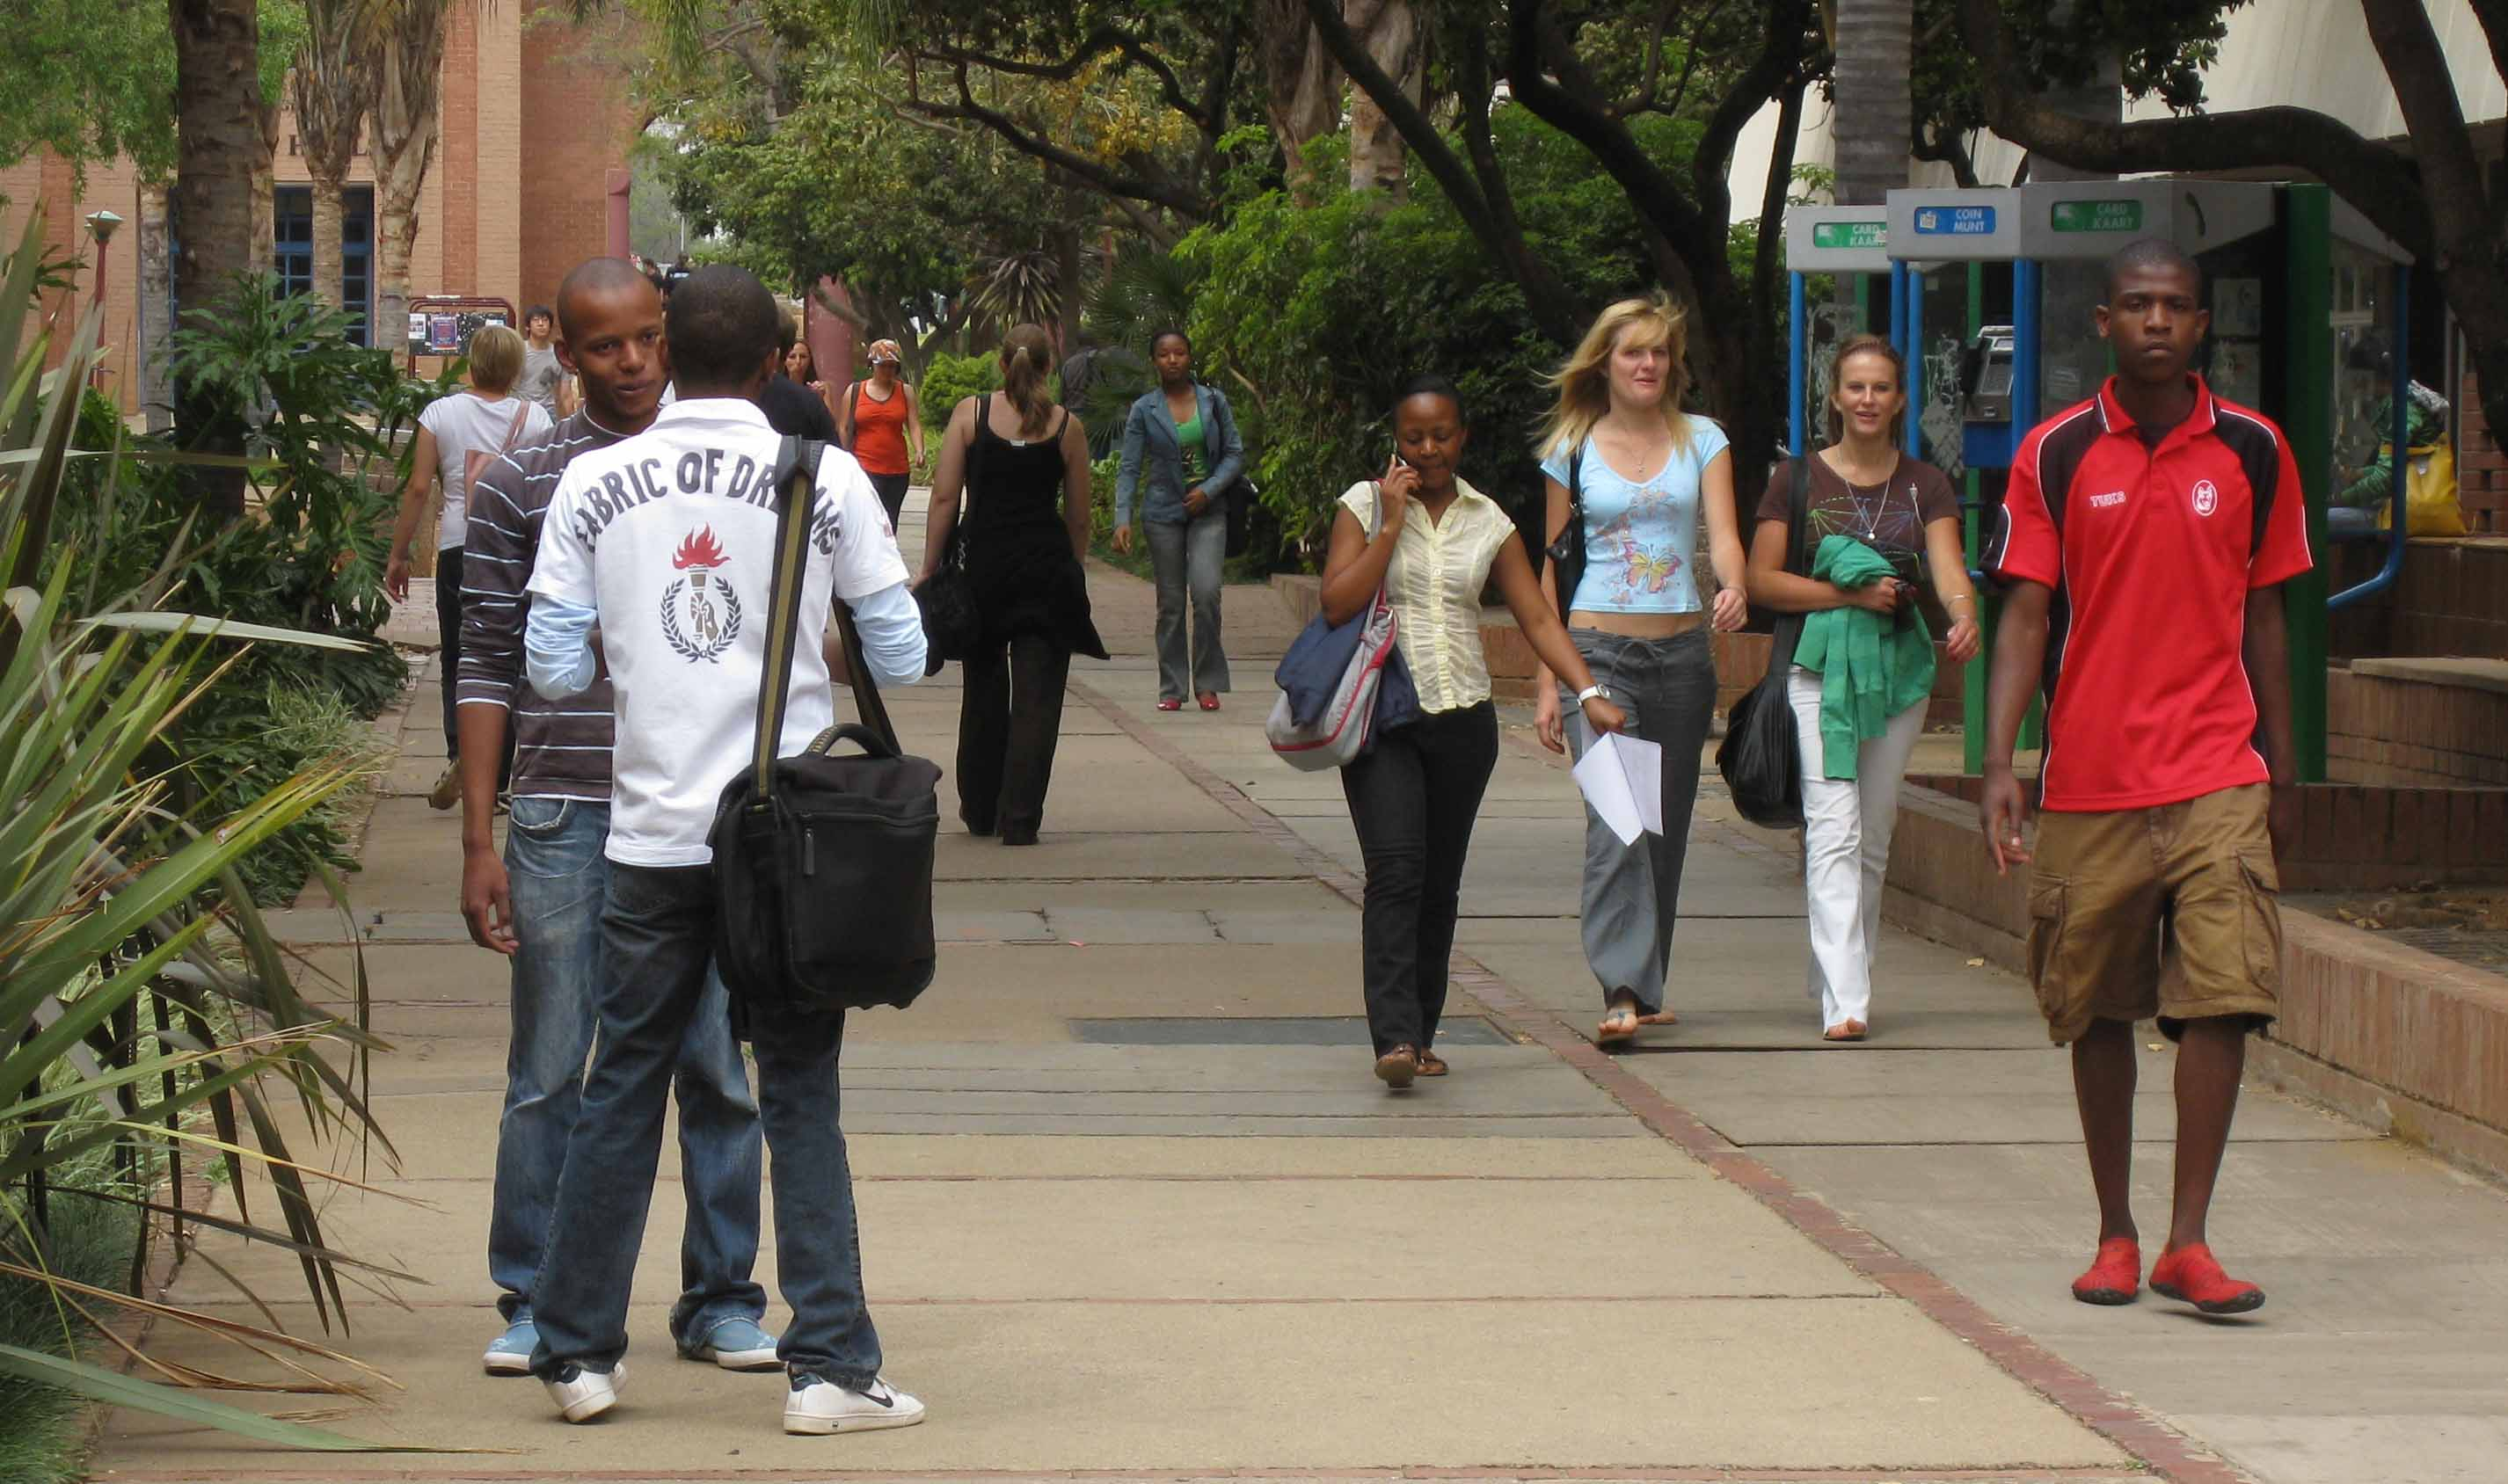 IRIN | Low HIV prevalence rates on campus